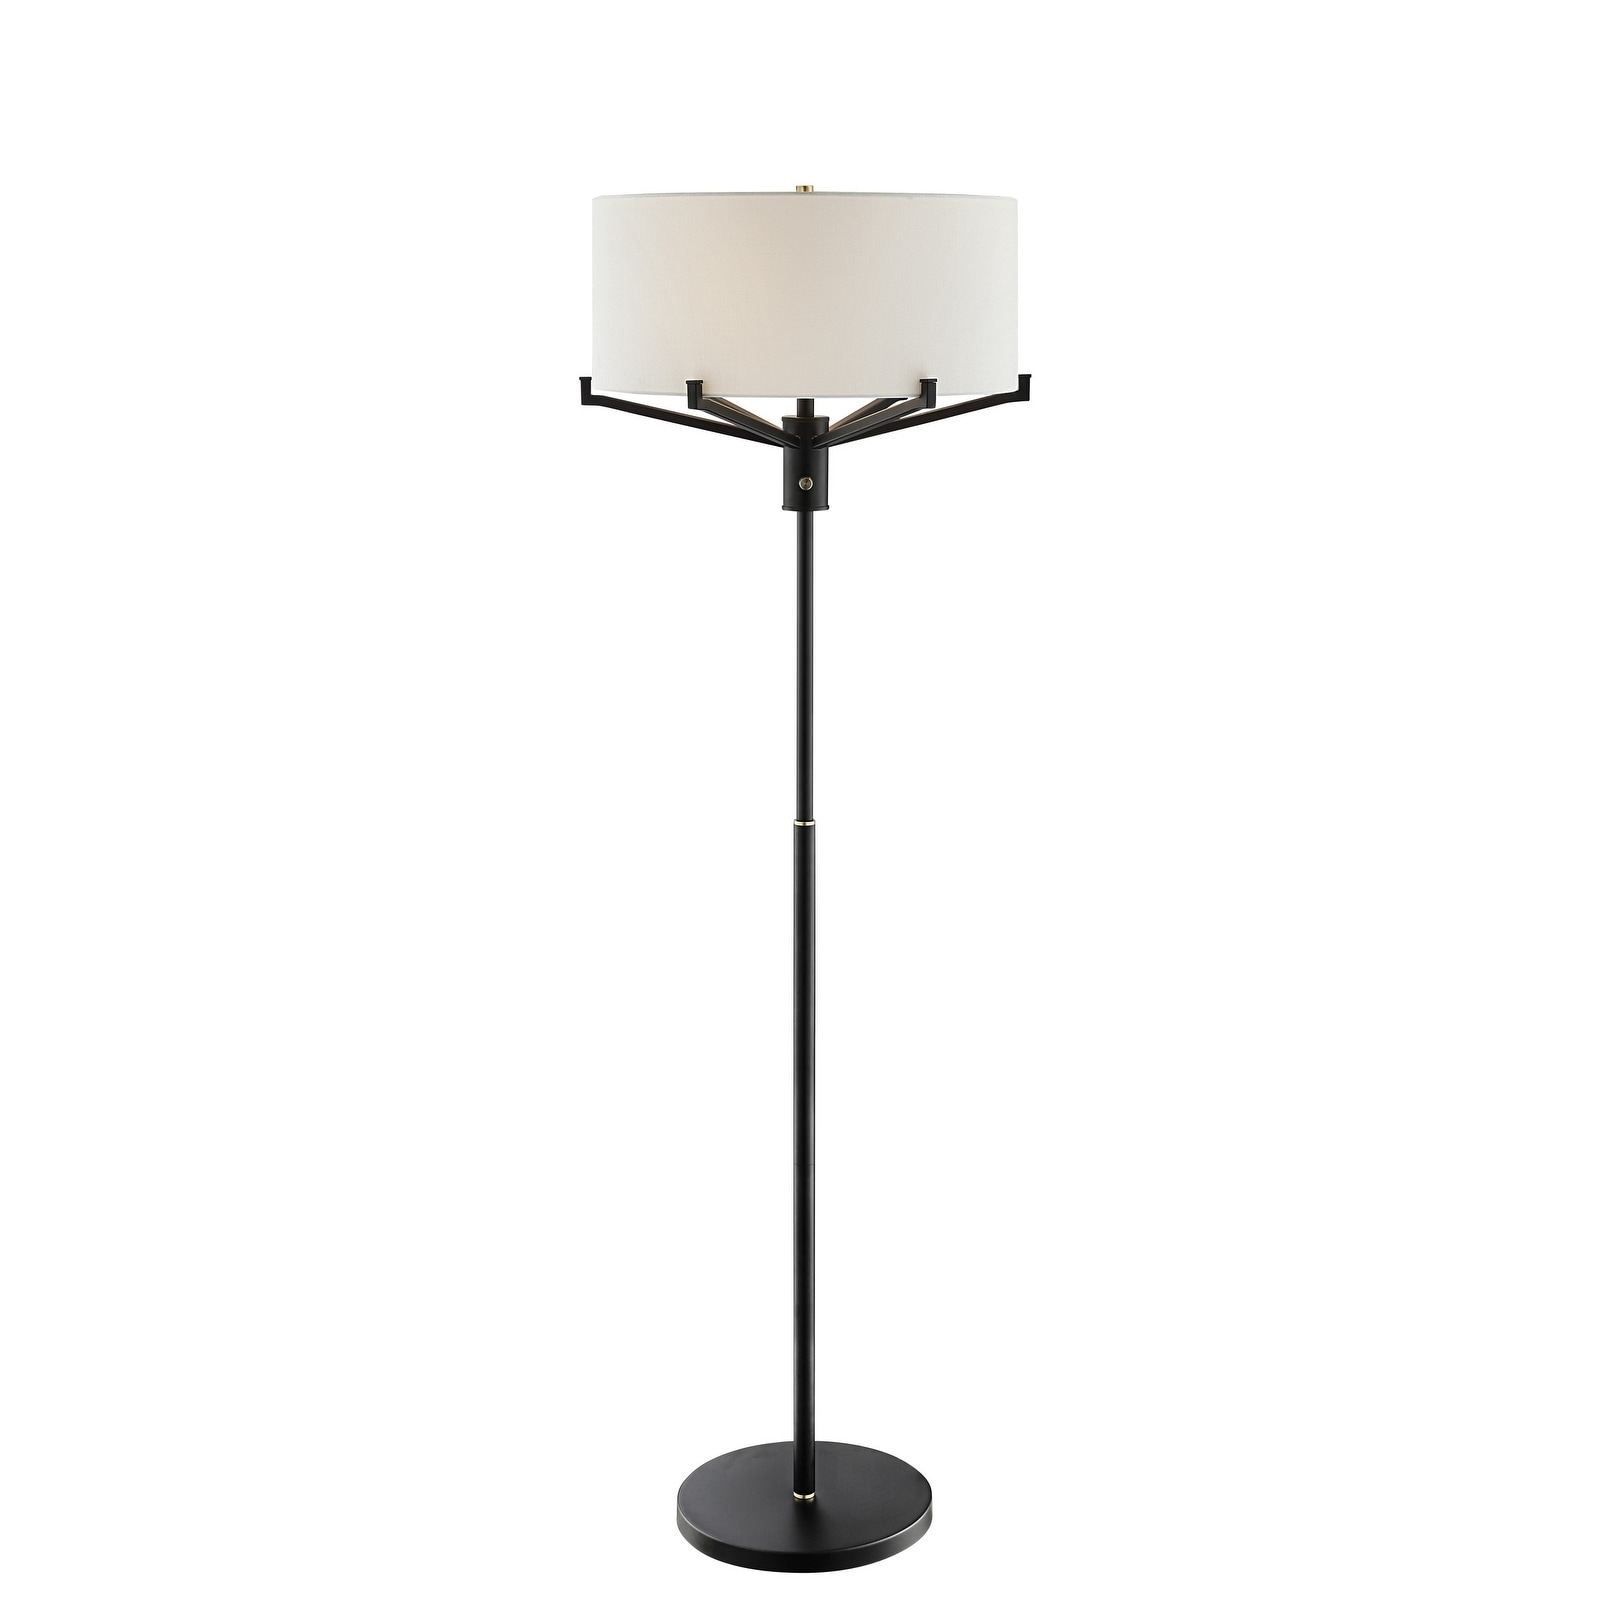 Pedestal Floor Lamps Jerod Floor Lamp